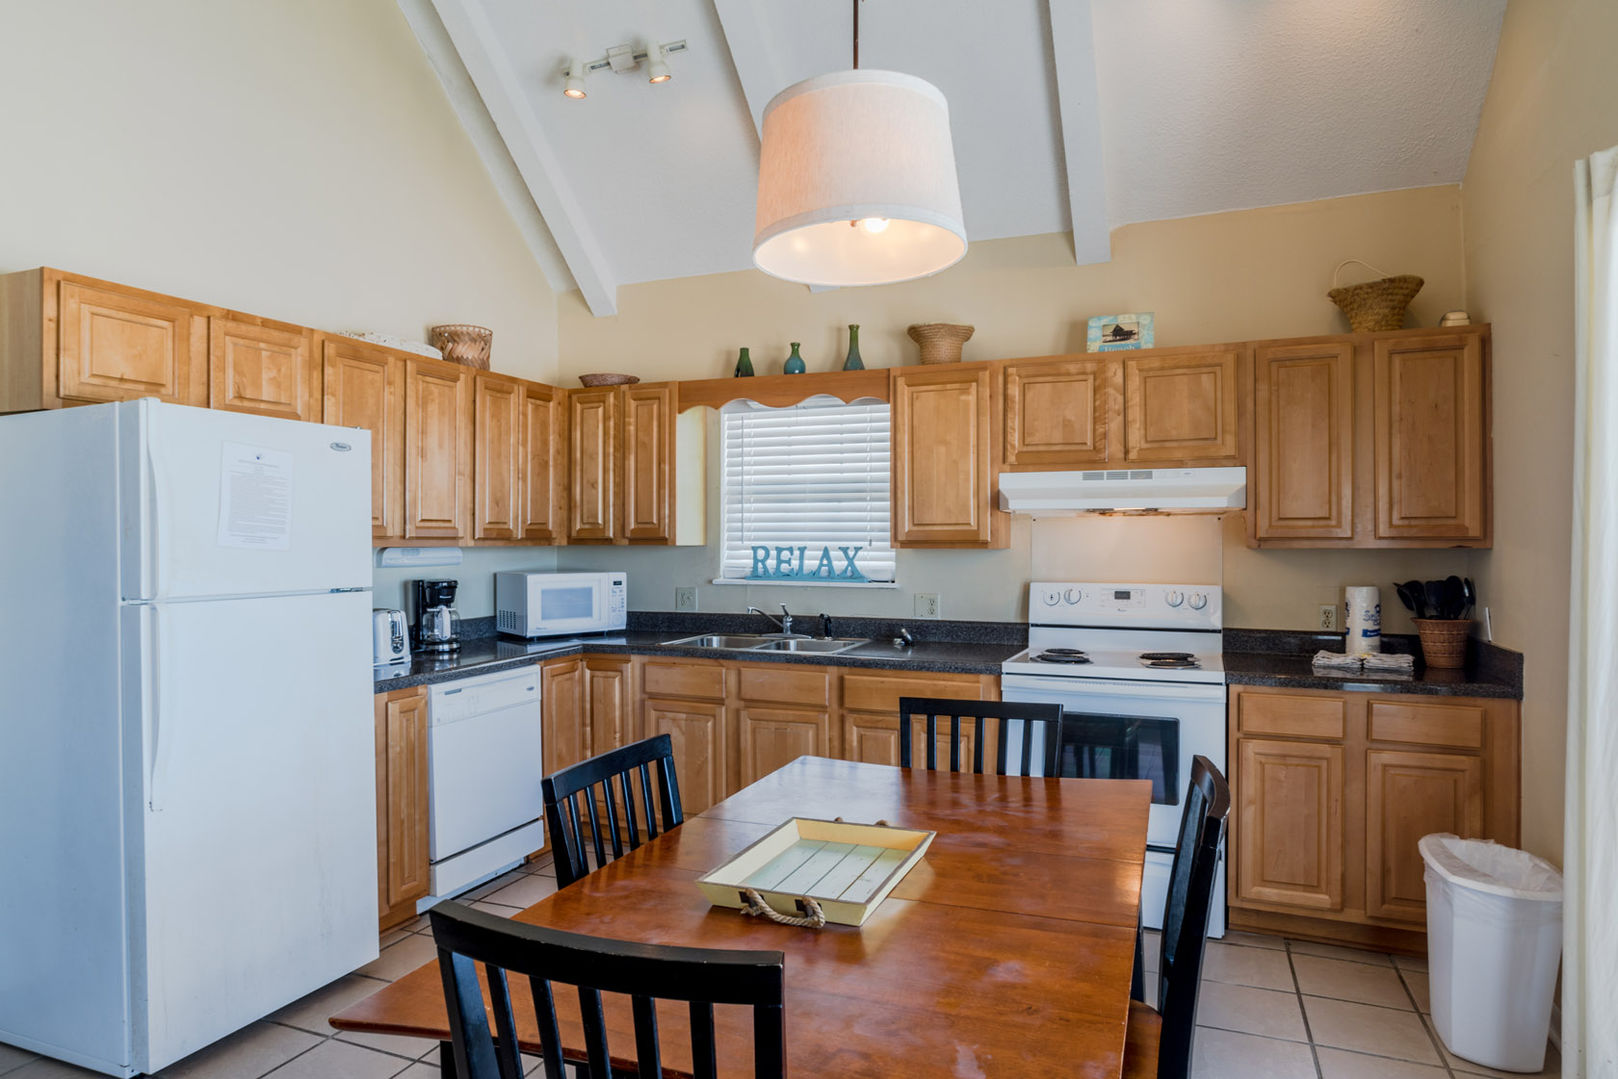 The Fully Equipped Kitchen Was Renovated In 2009 with new appliances.